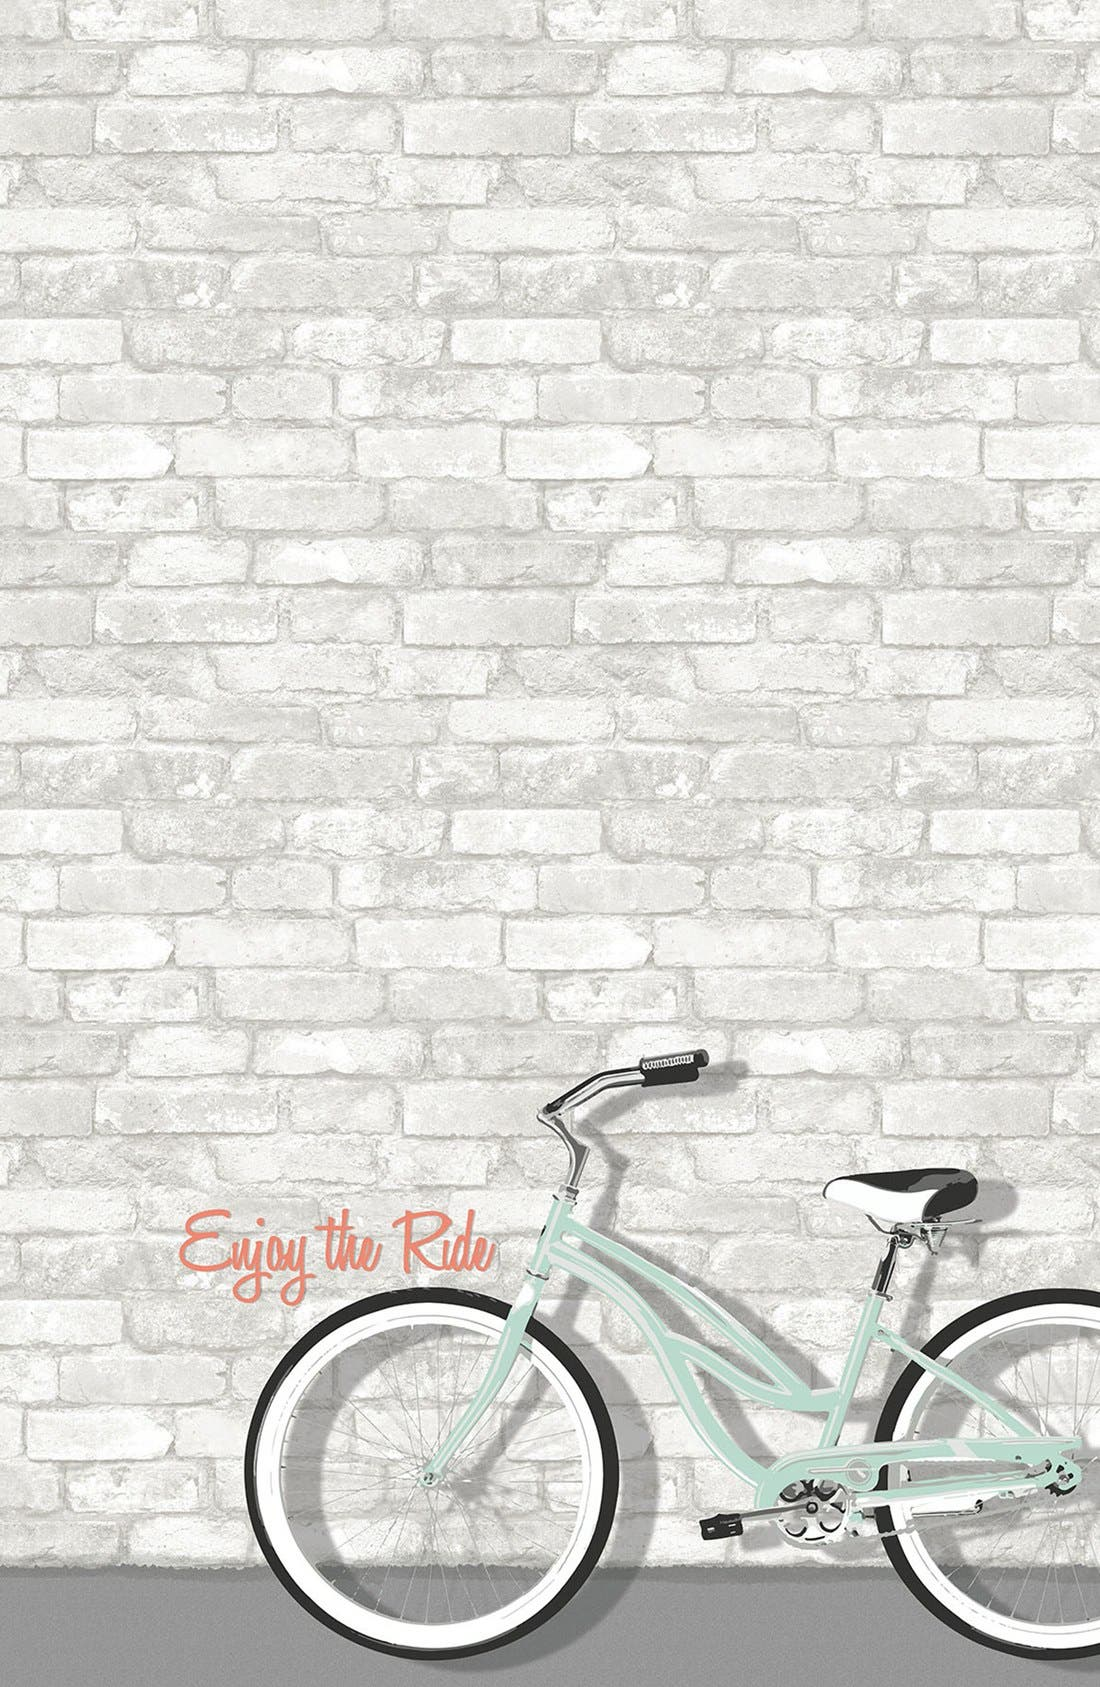 Alternate Image 1 Selected - Wallpops 'Enjoy the Ride' Dry Erase Wall Decal